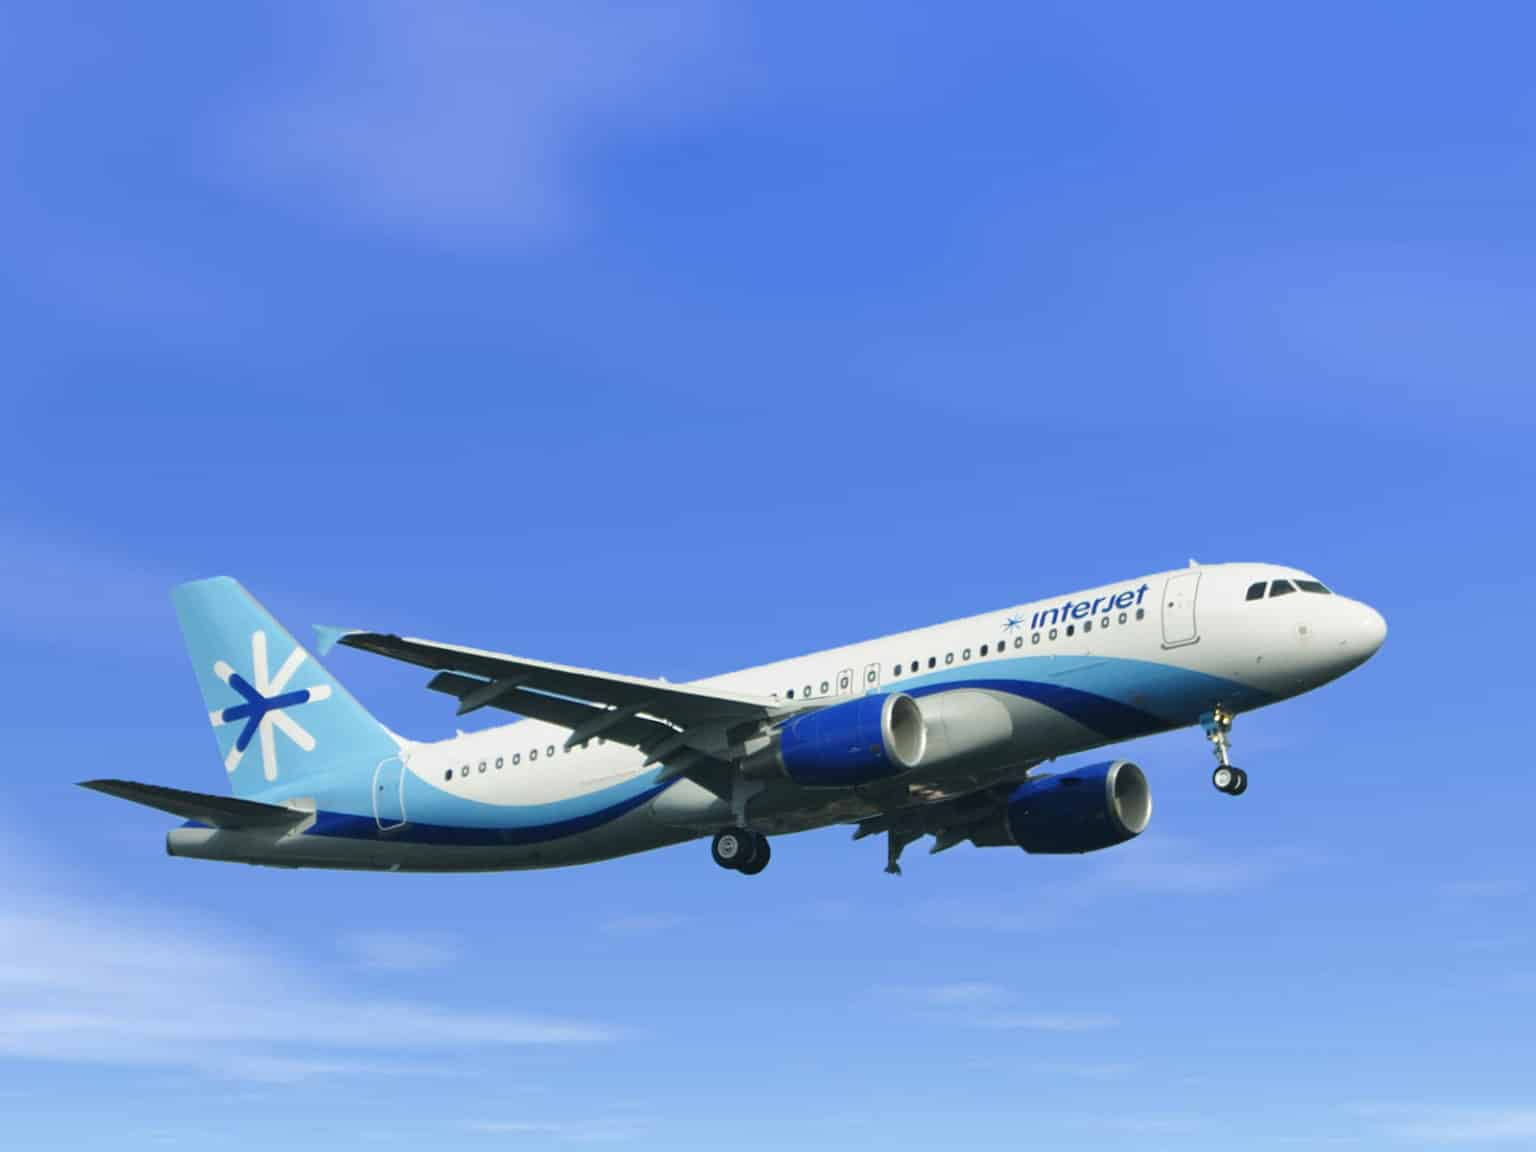 Avion Interjet au Mexique